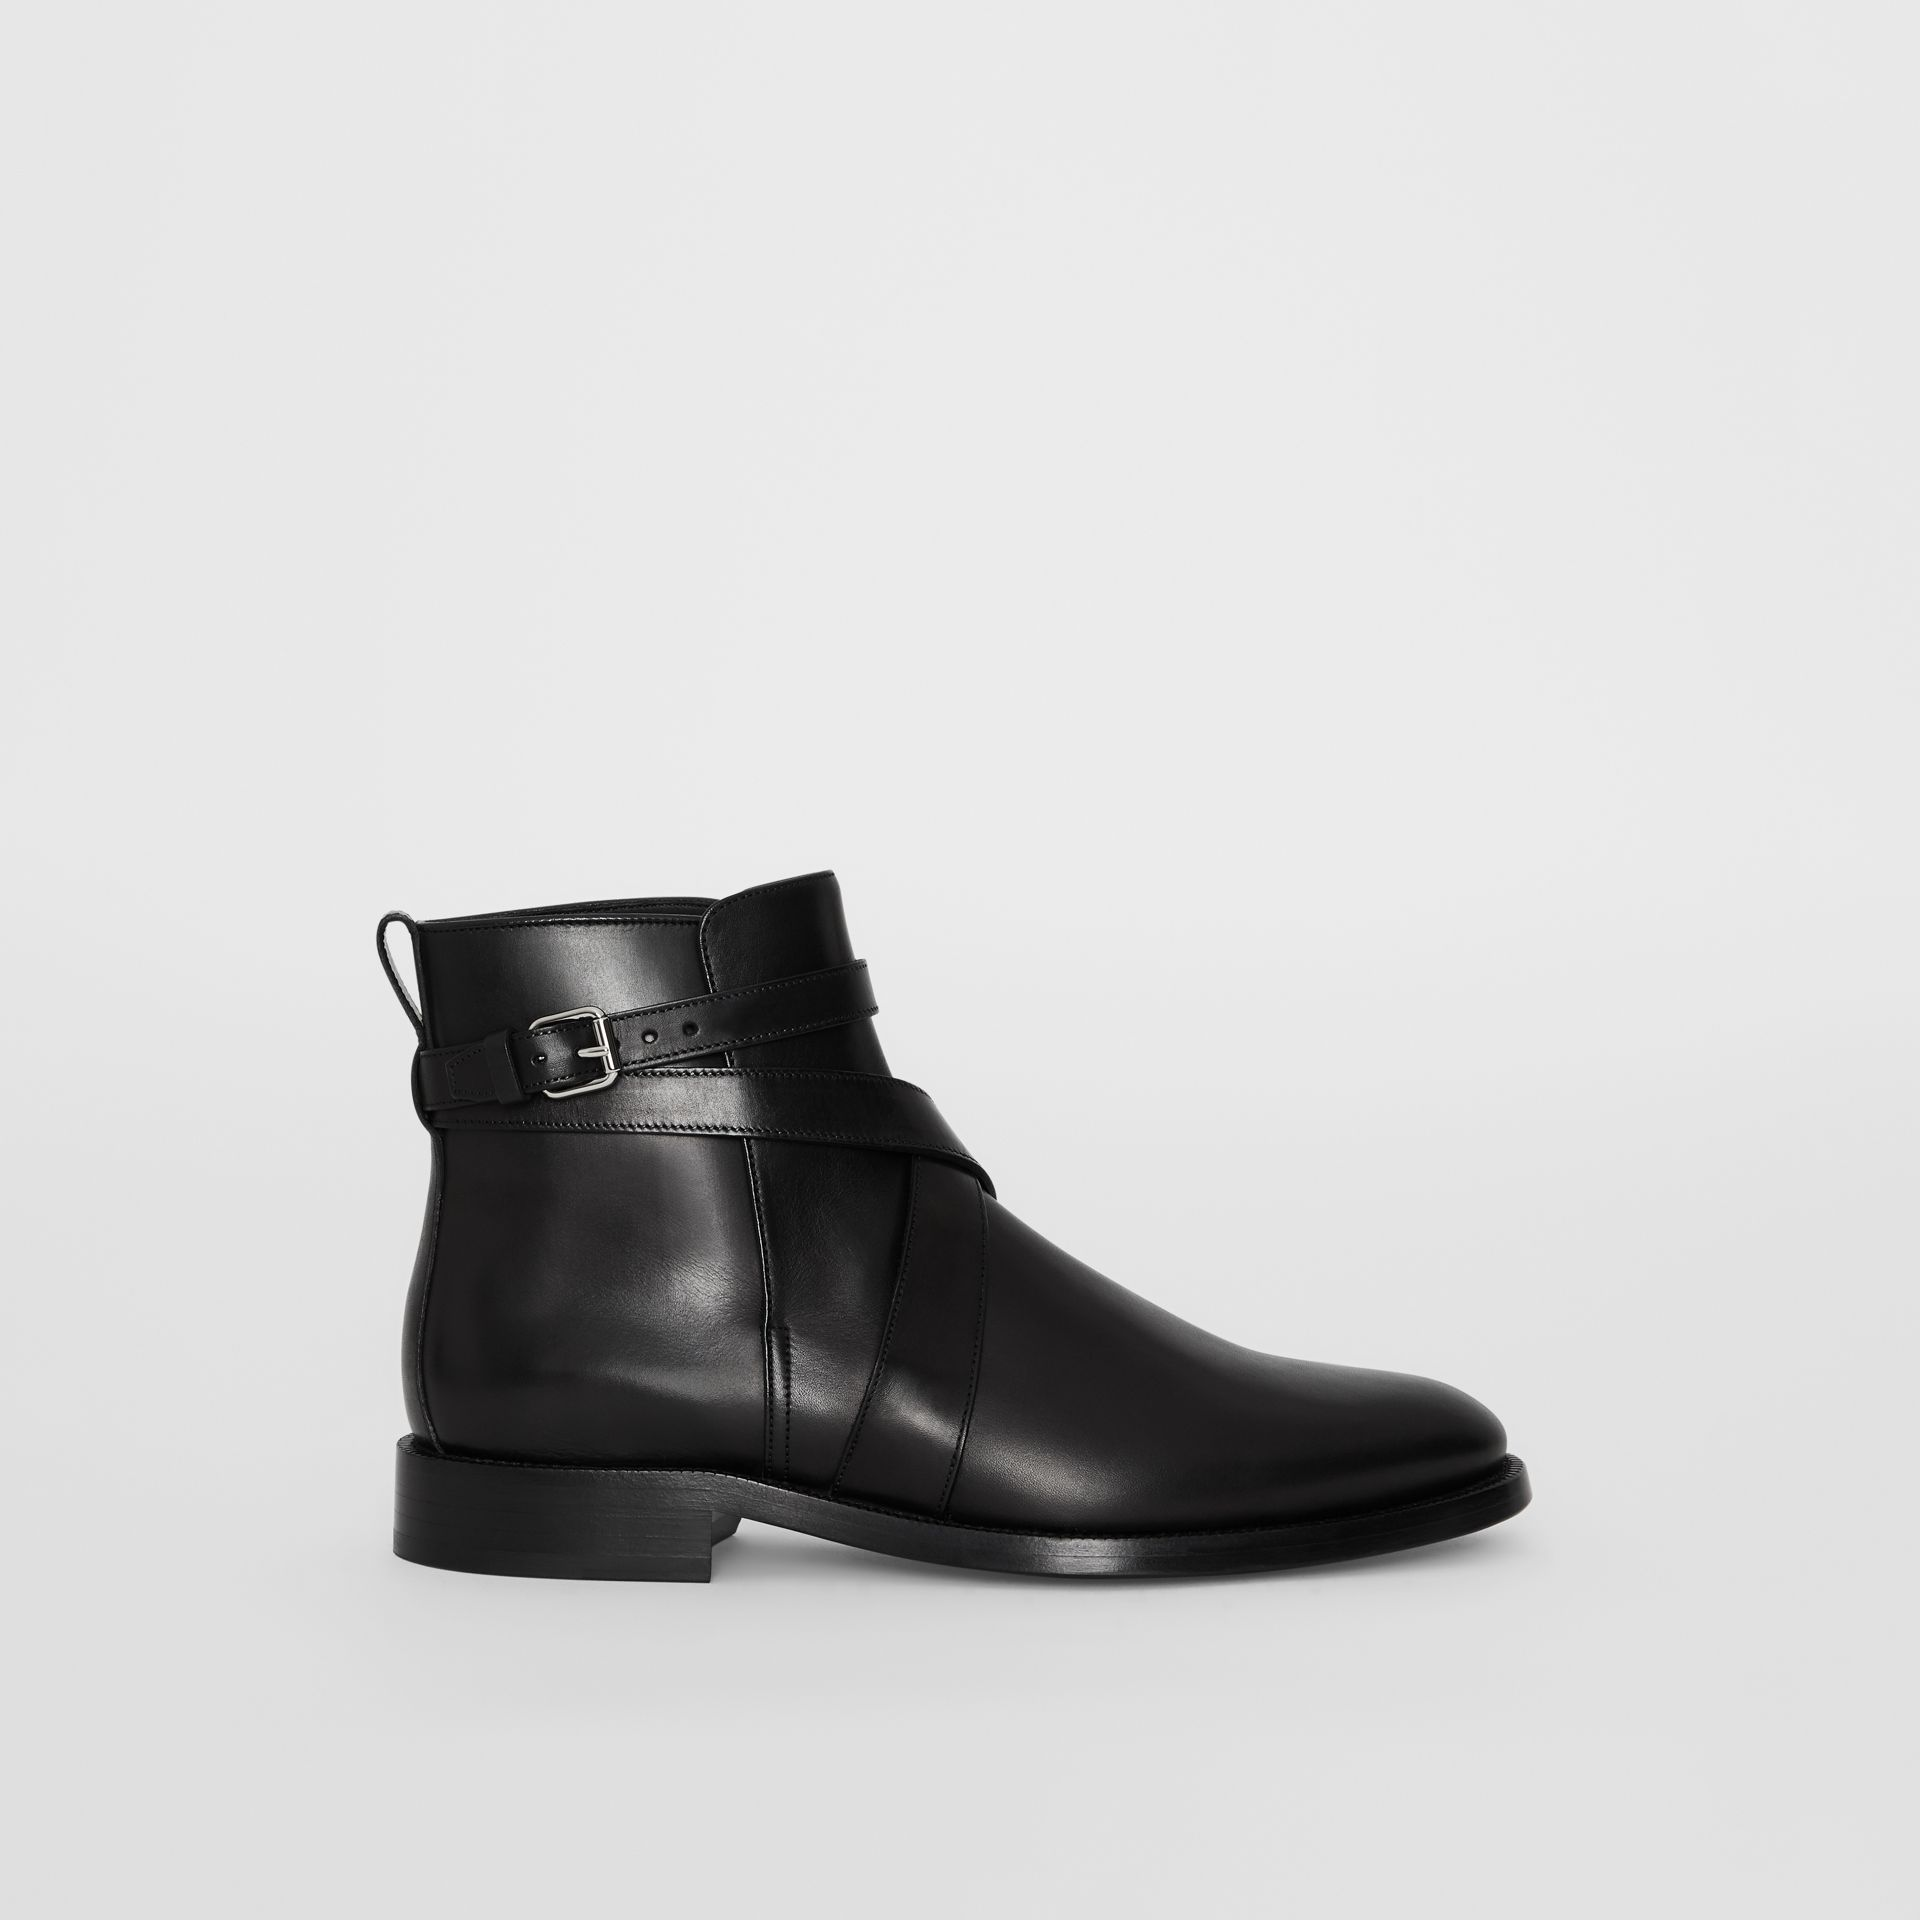 Bottines en cuir à sangle (Noir) - Homme | Burberry - photo de la galerie 5